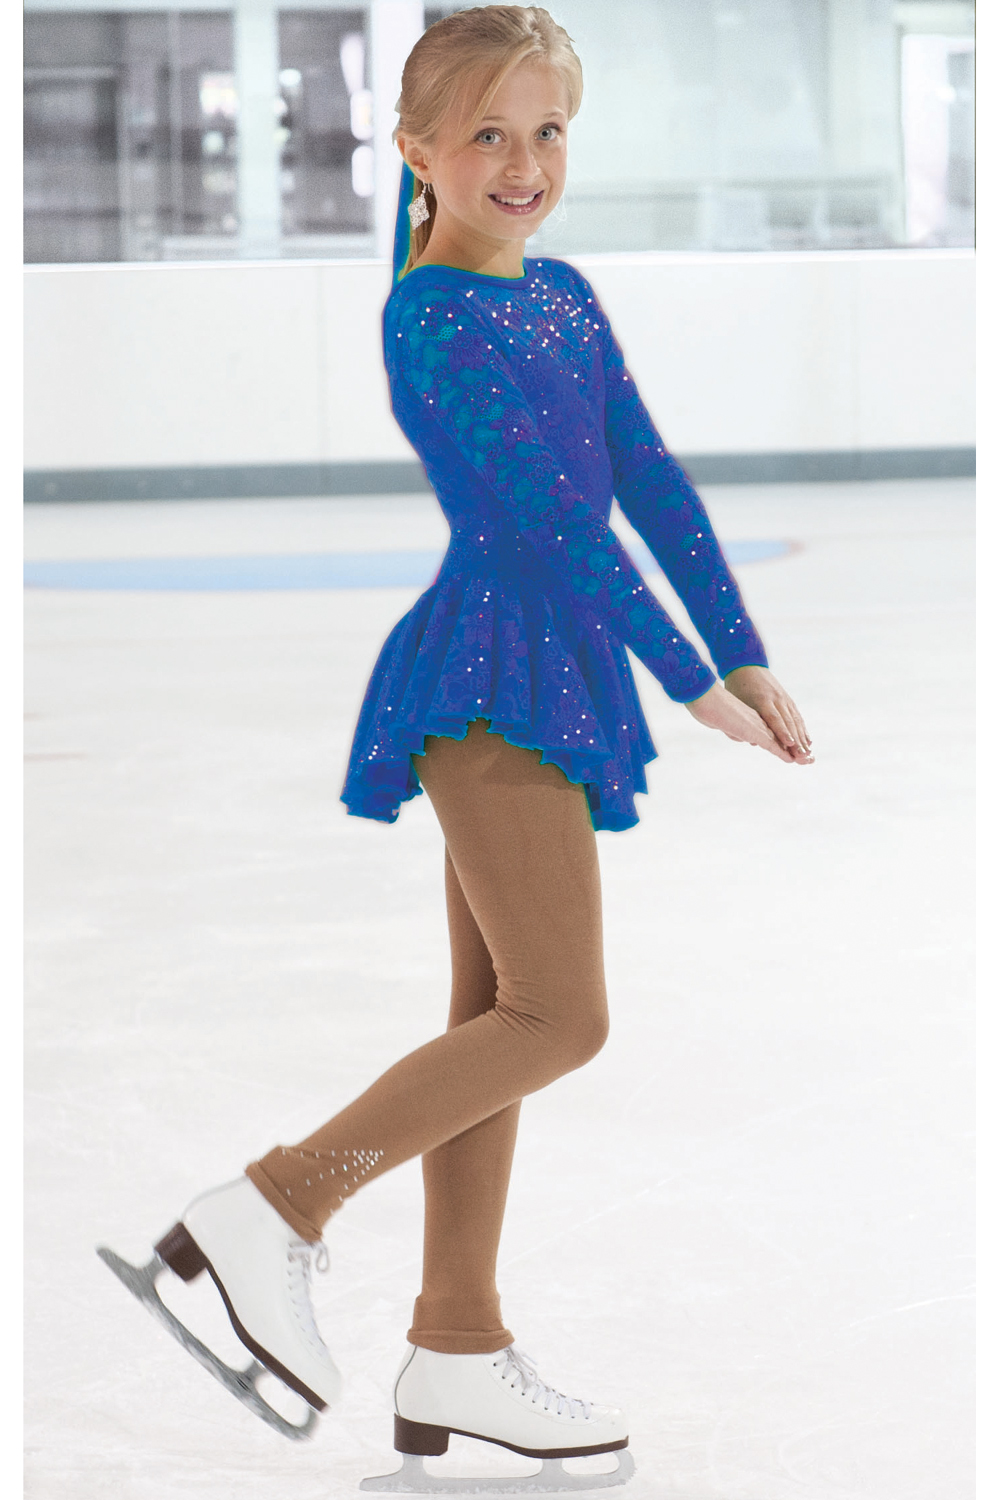 Girls Ice Skating Dress